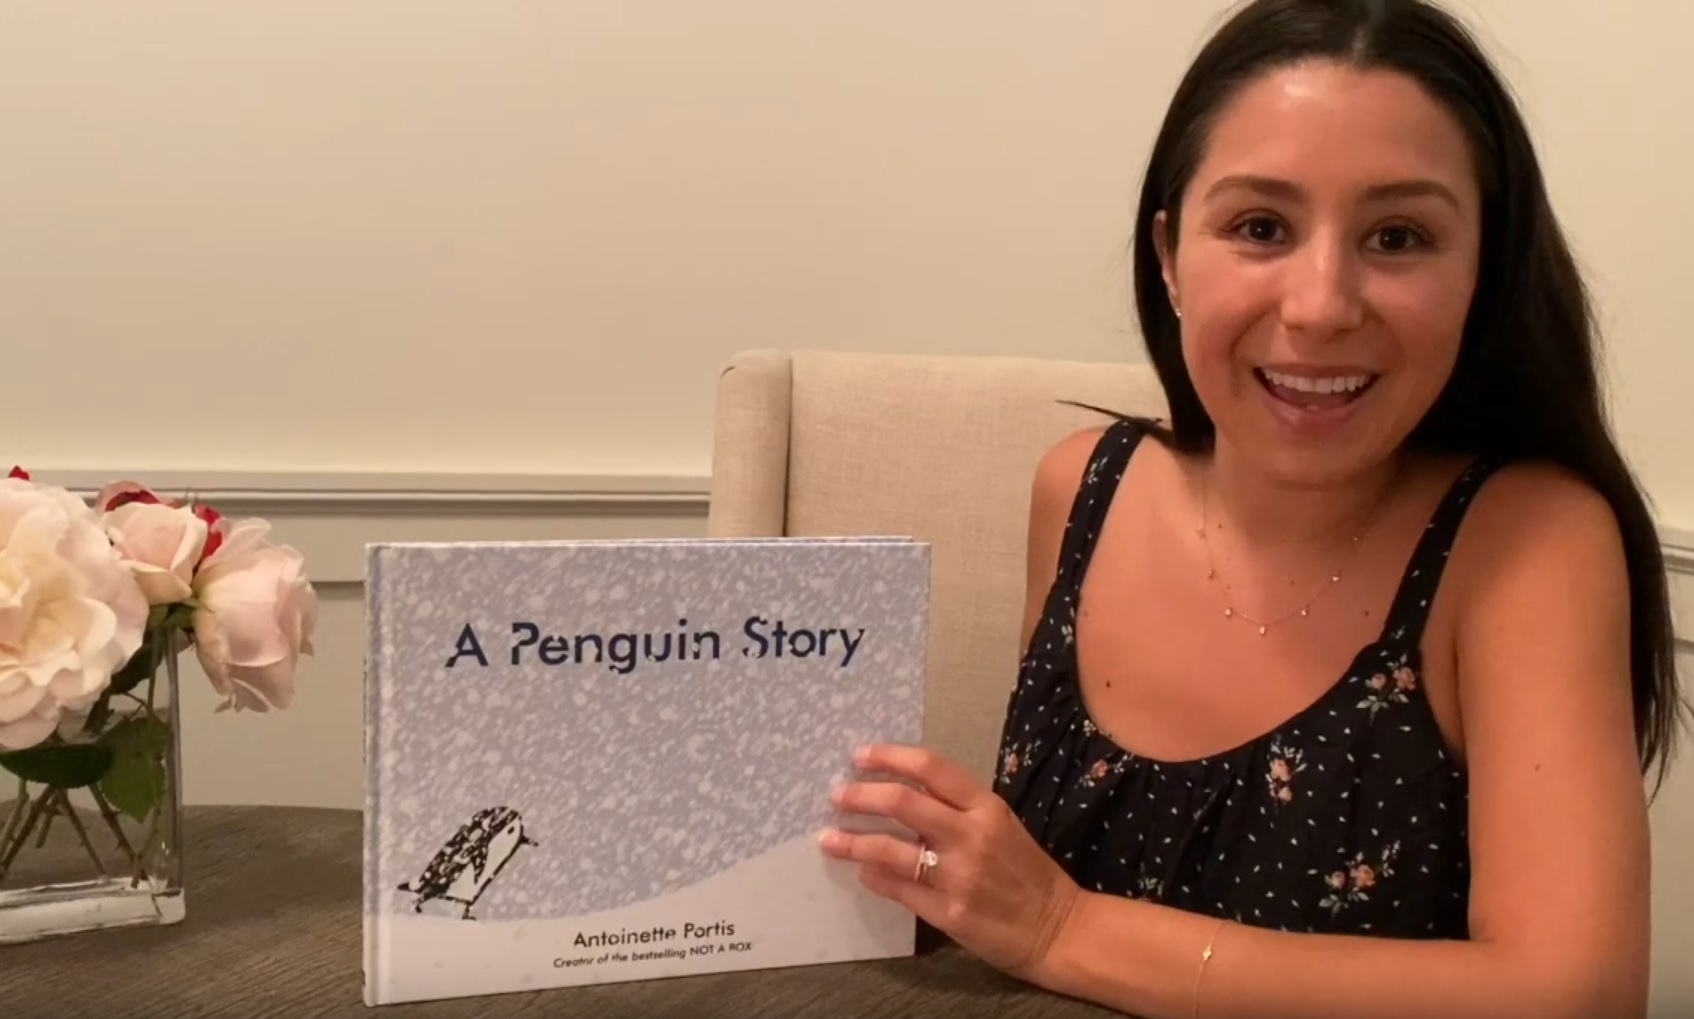 A Penguin Story video image